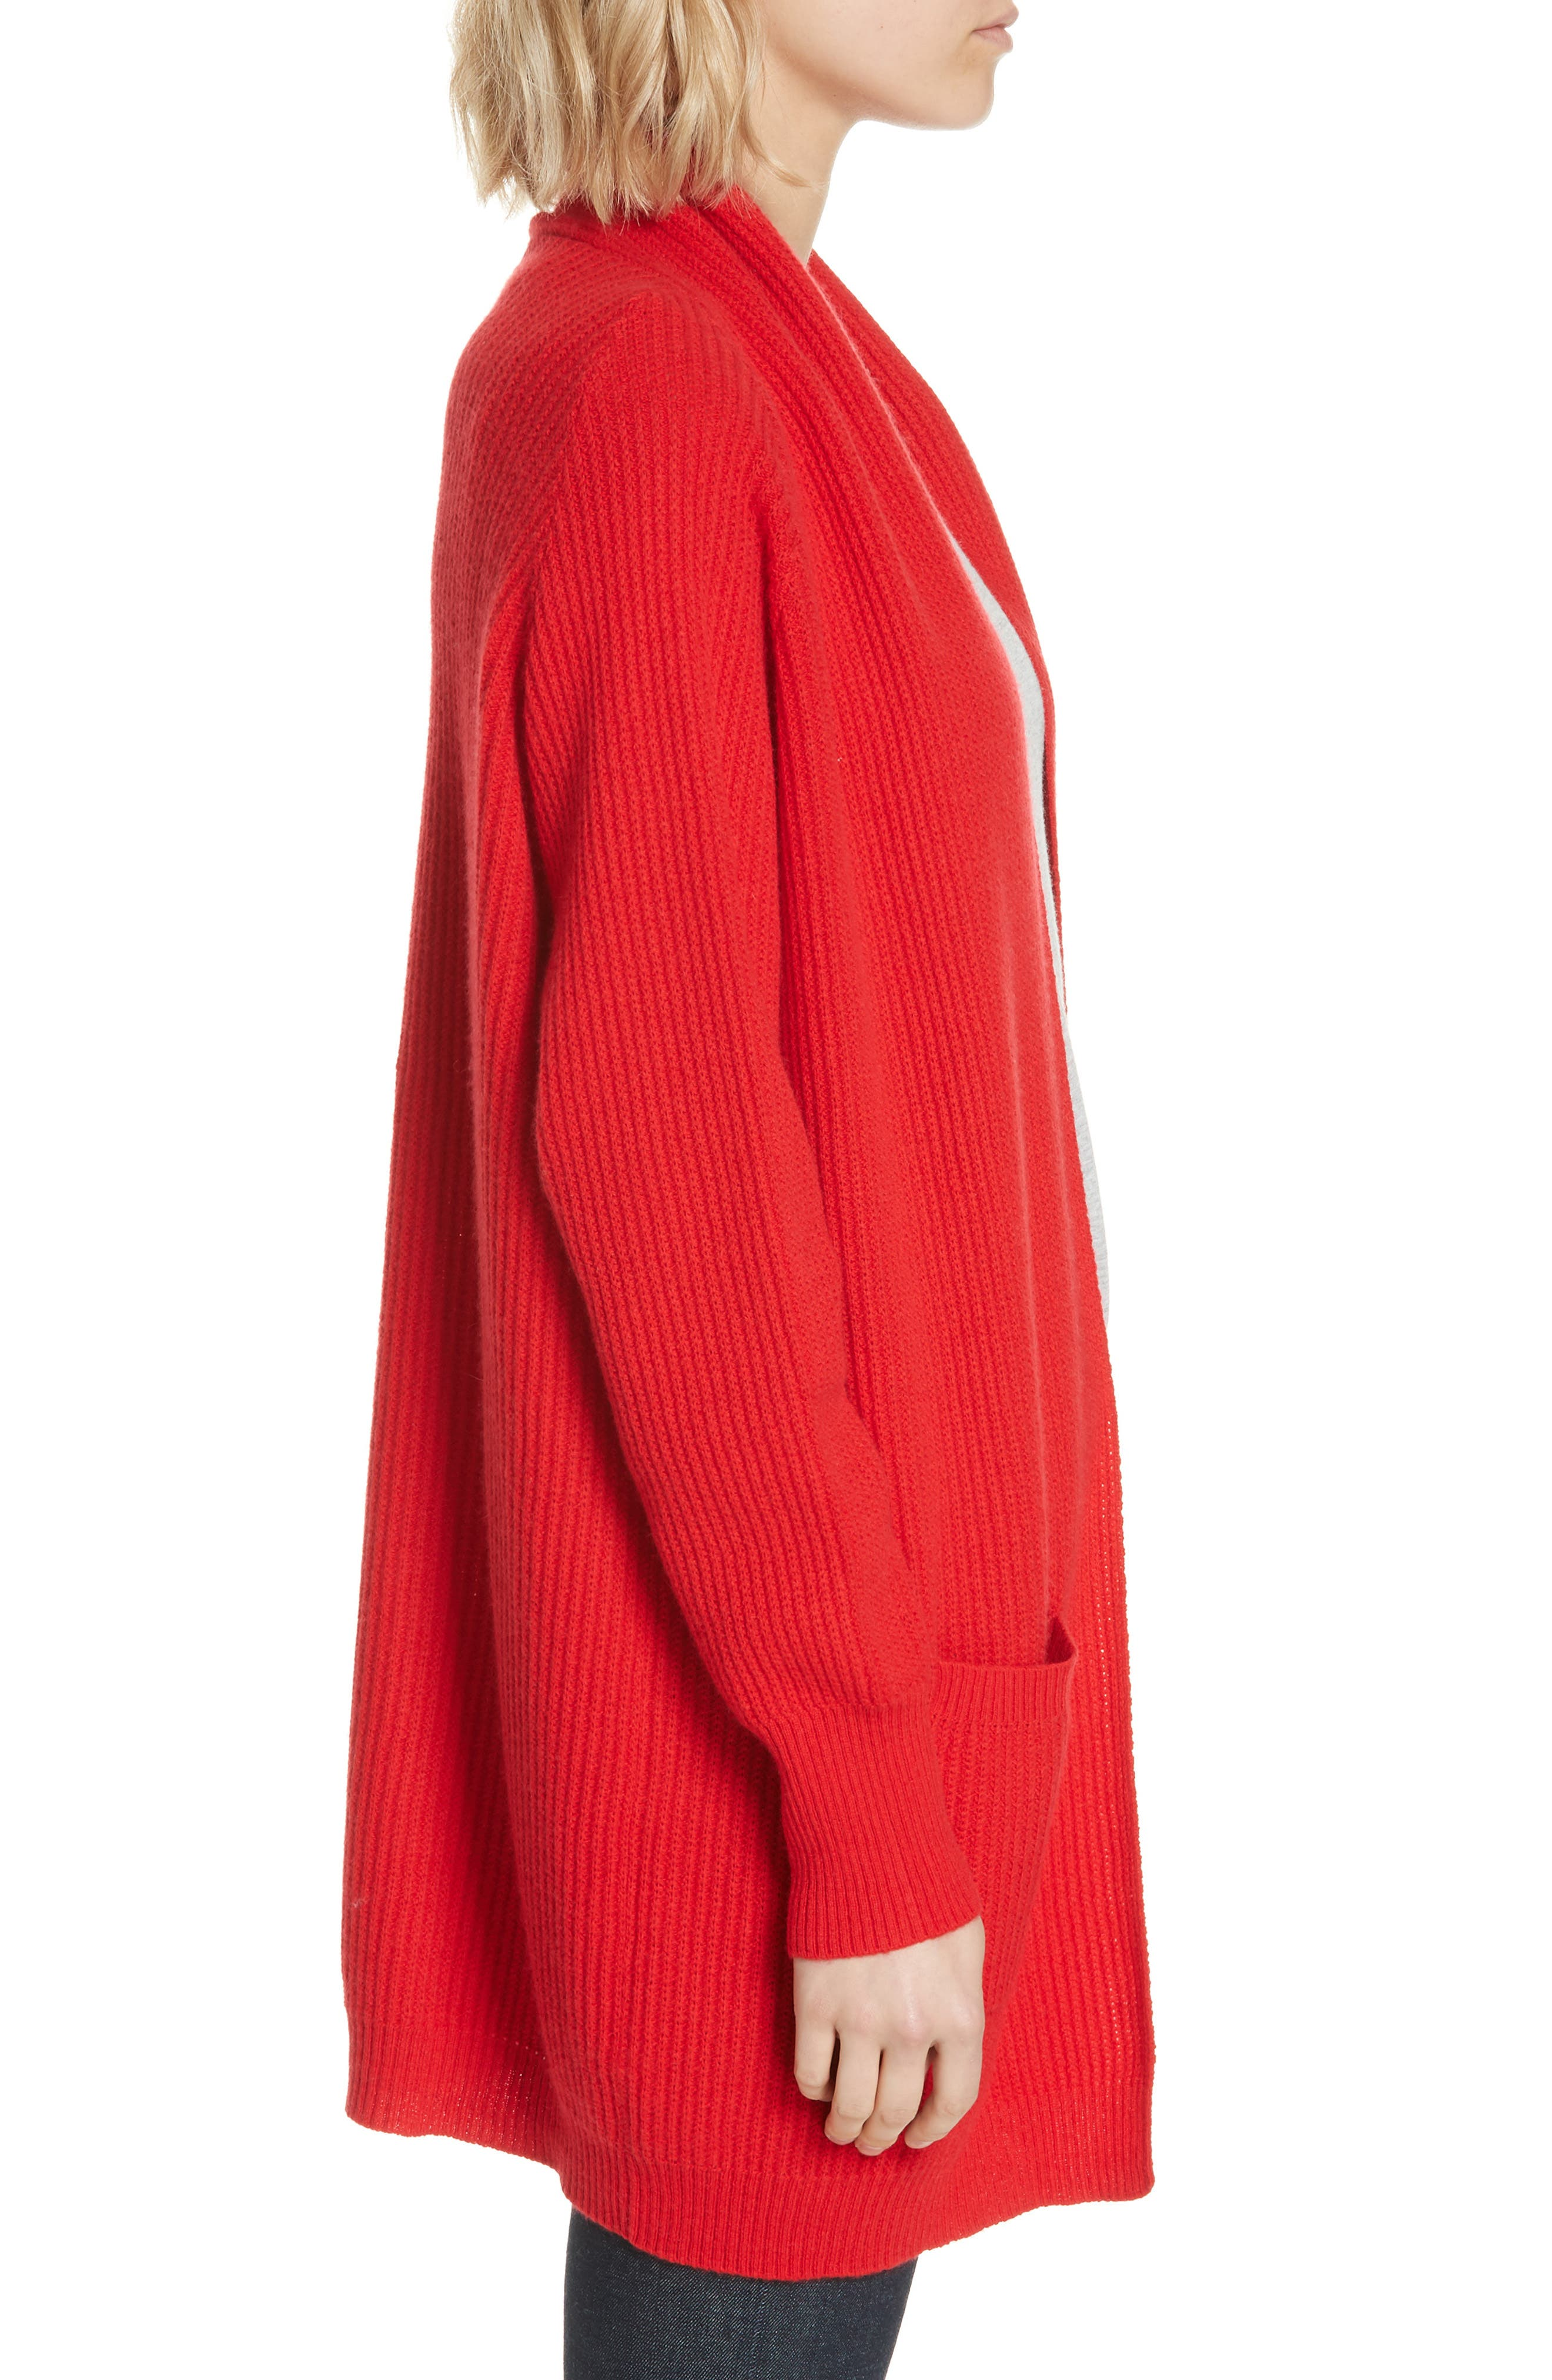 Cashmere Cardigan,                             Alternate thumbnail 3, color,                             RED